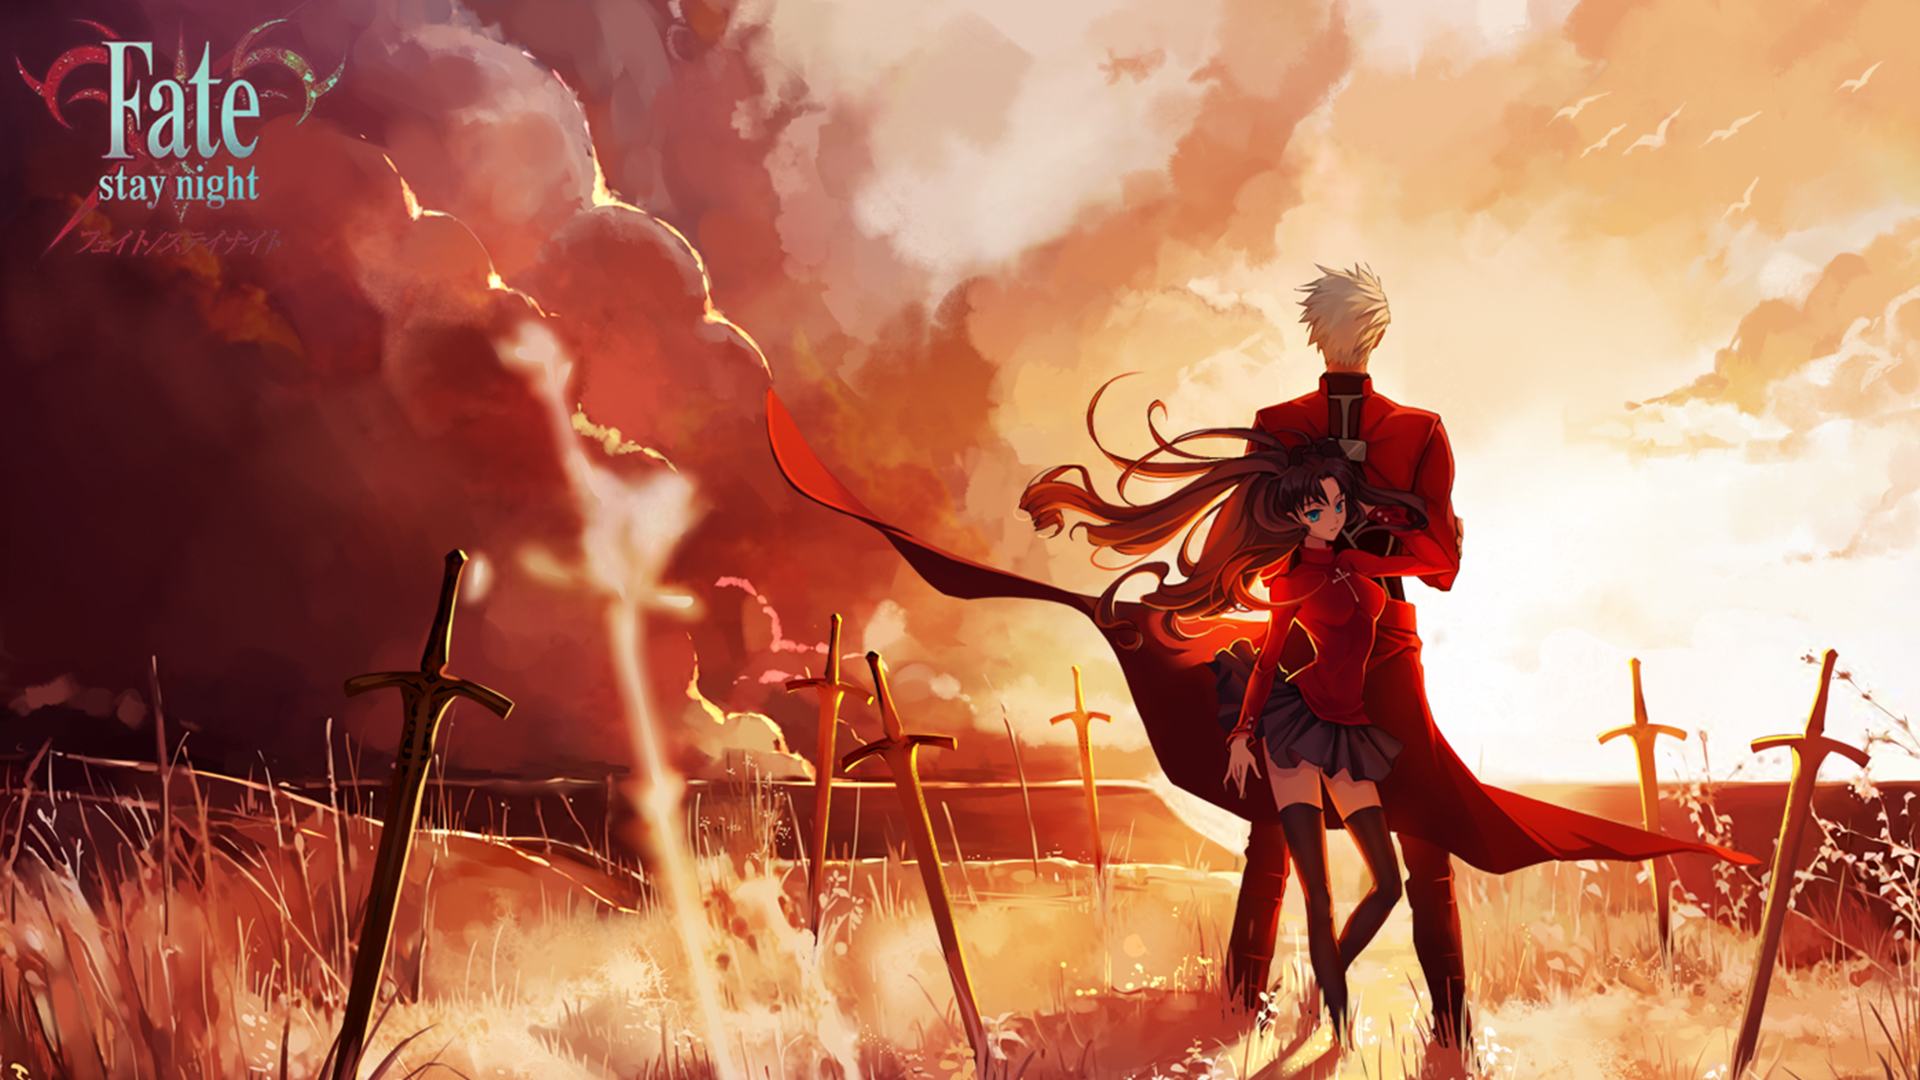 Fate Stay Night Unlimited Blade Works Hd Wallpaper Background